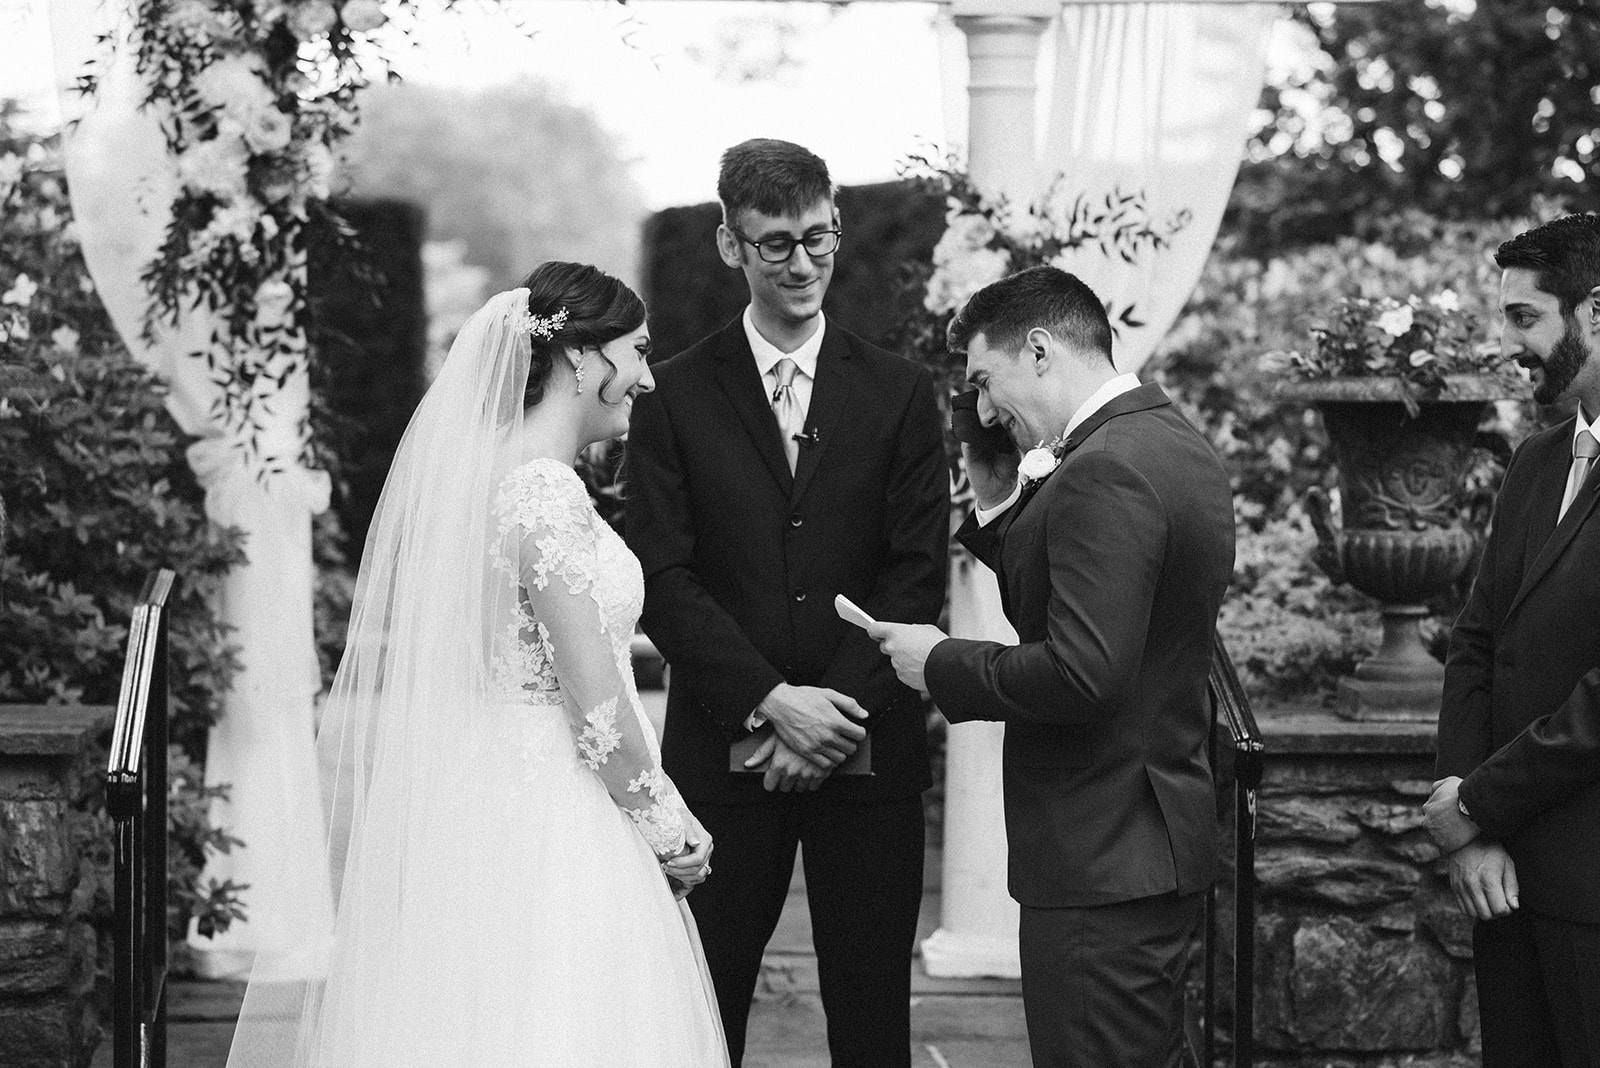 The groom is overwhelmed with emotion while sharing his vows at Drumore Estate.